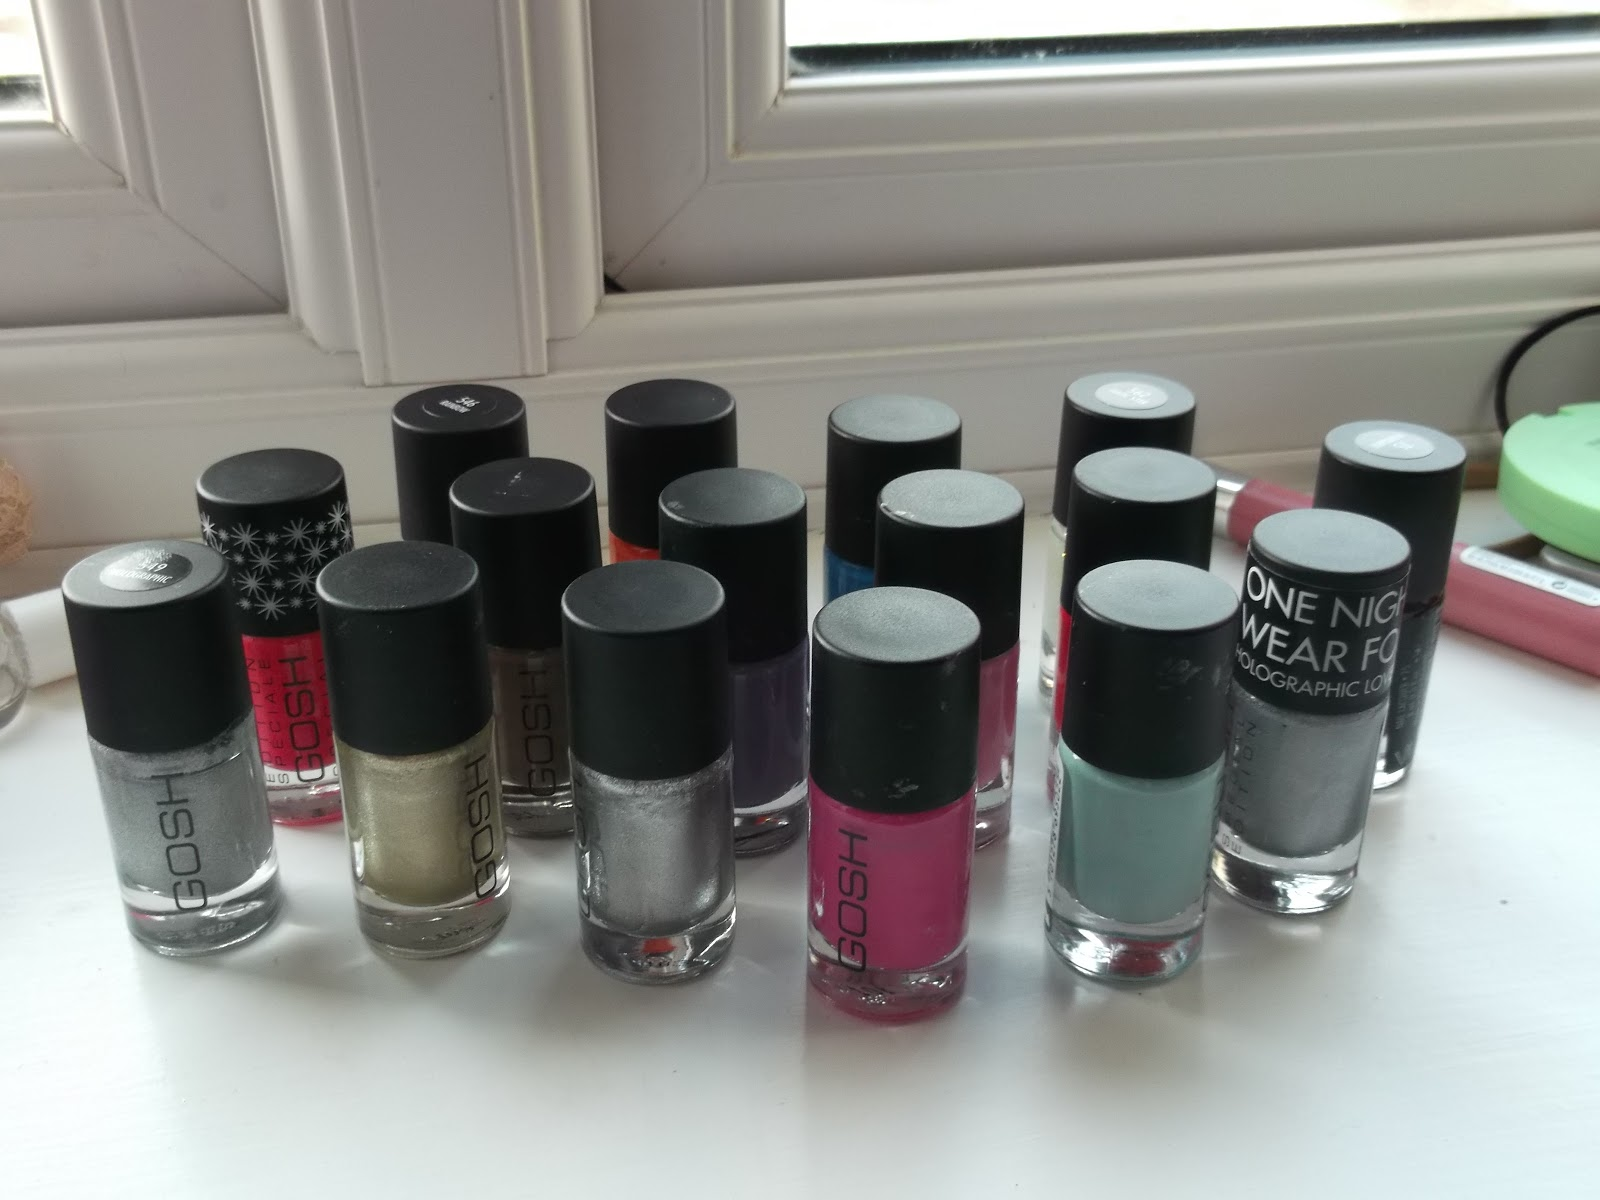 PETITE DECEMBER: GOSH Nail Polish Collection and Small Review